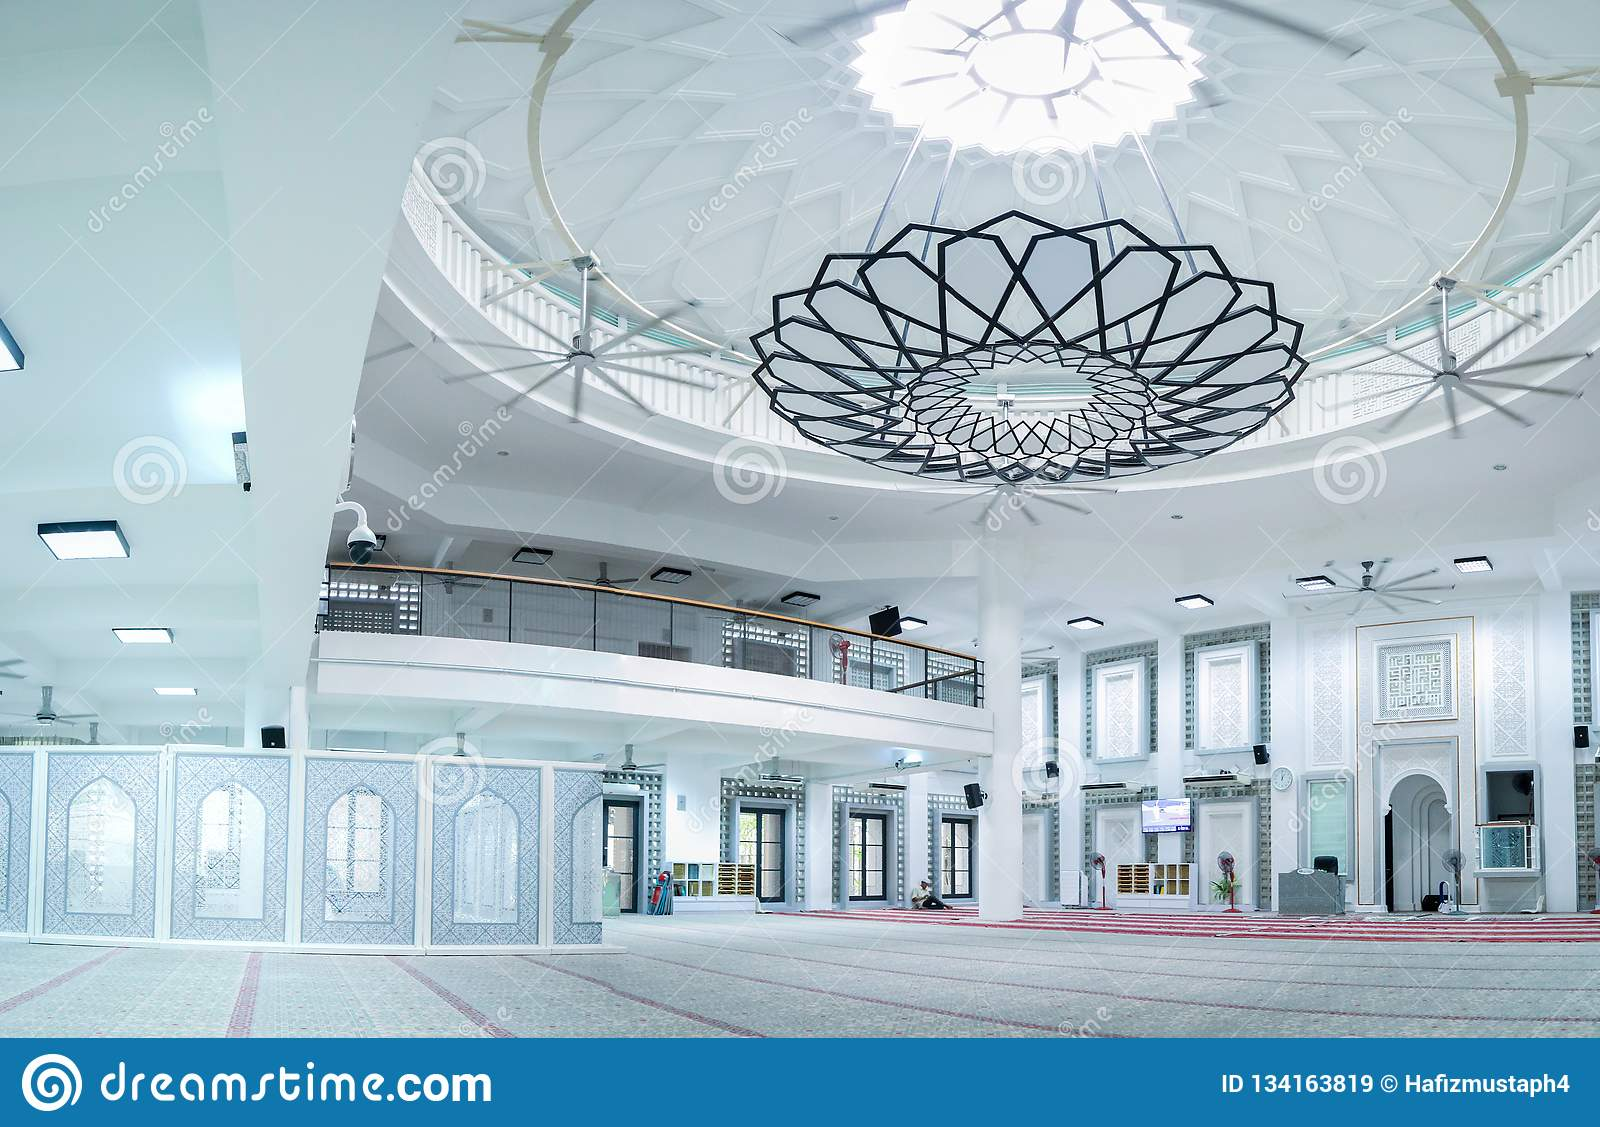 Huge hall of the mosque with modern minimalist chandelier at the center